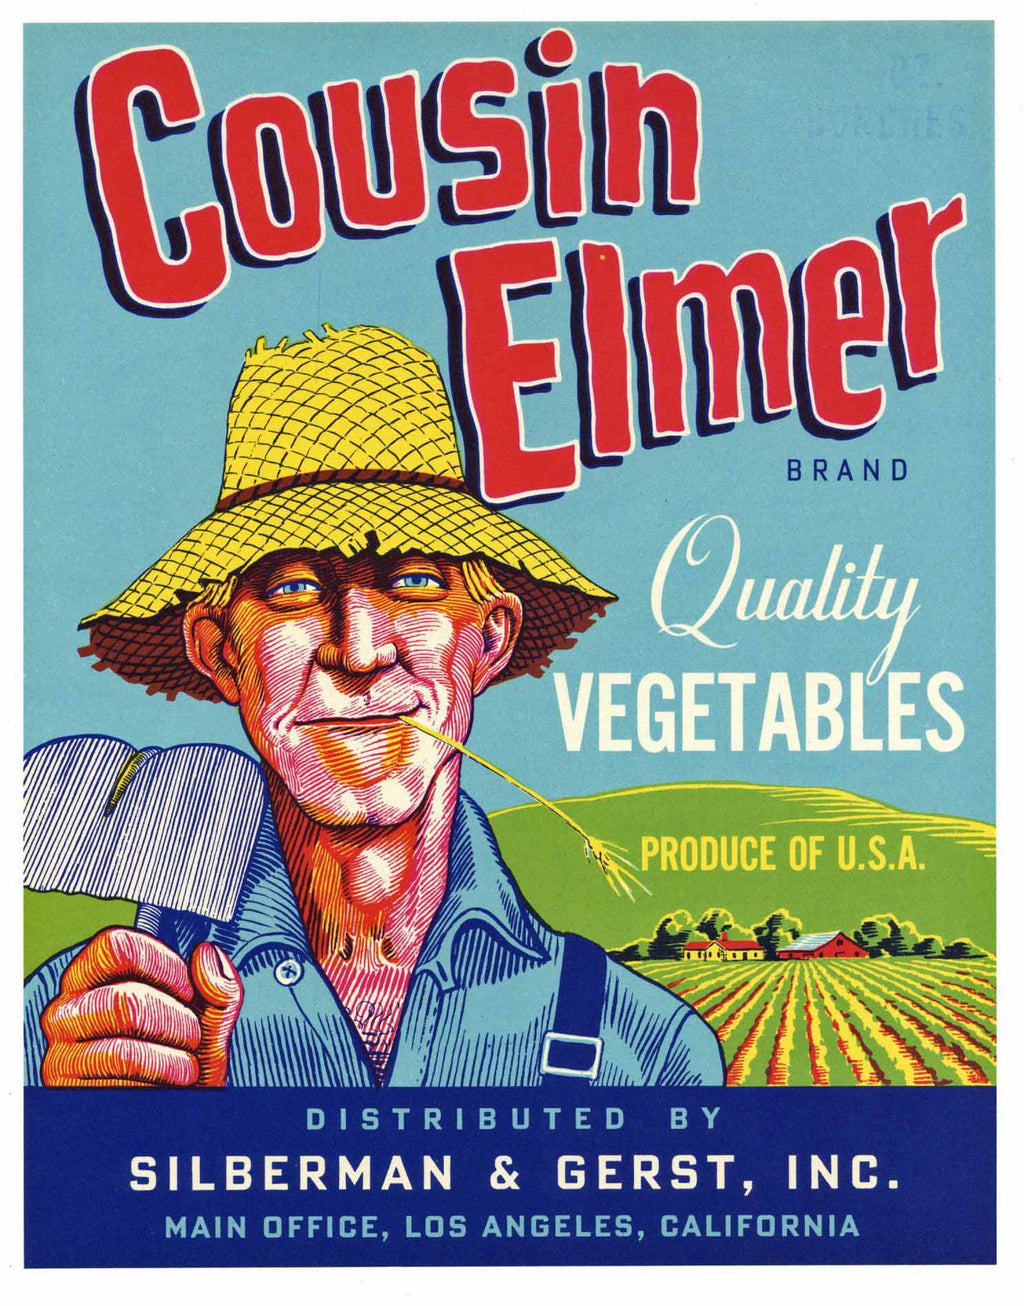 Cousin Elmer Brand Vintage Vegetable Crate Label